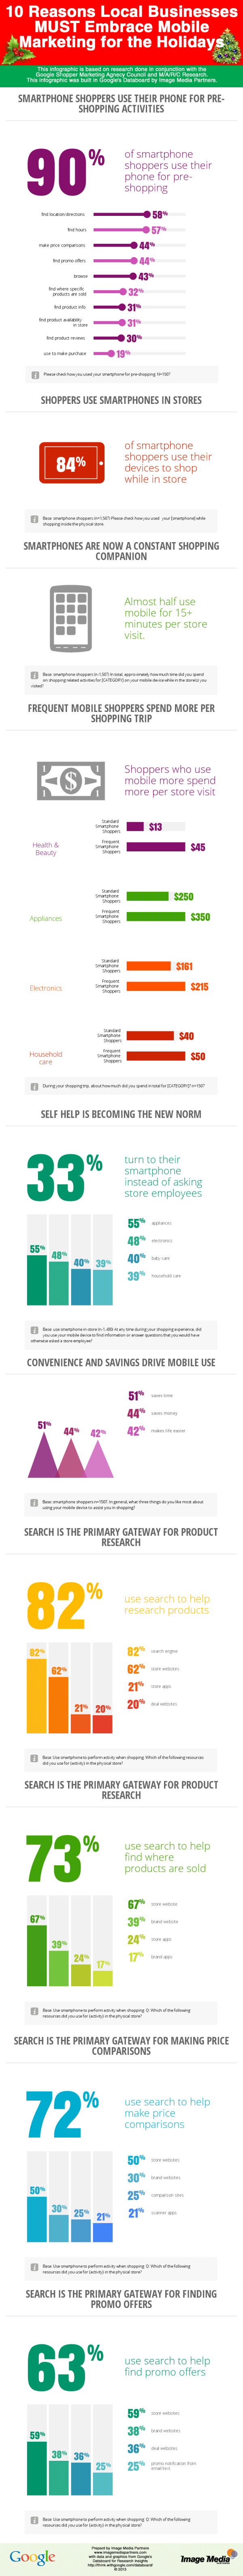 Local businesses must embrace Mobile marketing for the holidays resized 600